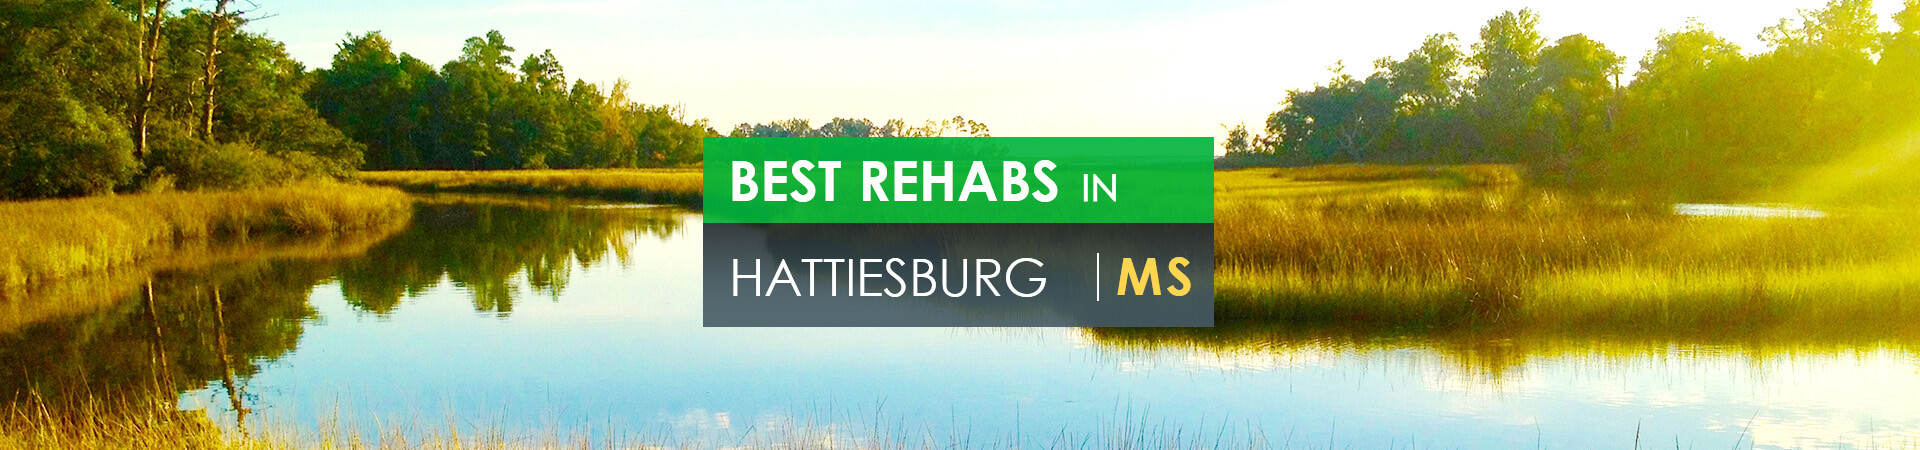 Best rehabs in Hattiesburg, MS